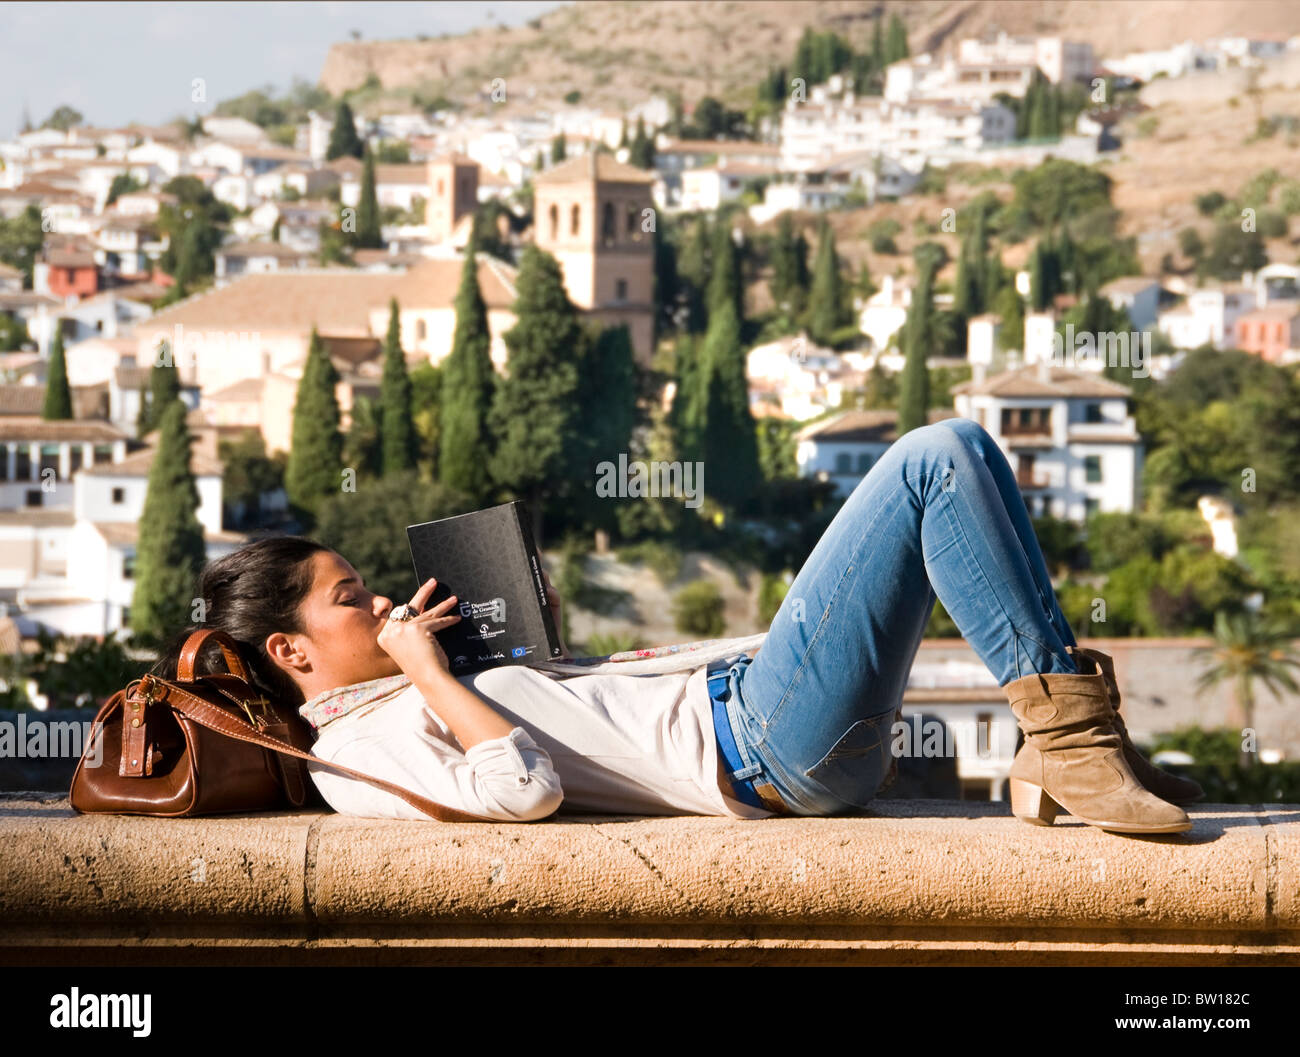 Alhambra Granada Spain Andalusia golden palace Beautiful Young Woman Student Teenager reading a Book travel guide - Stock Image